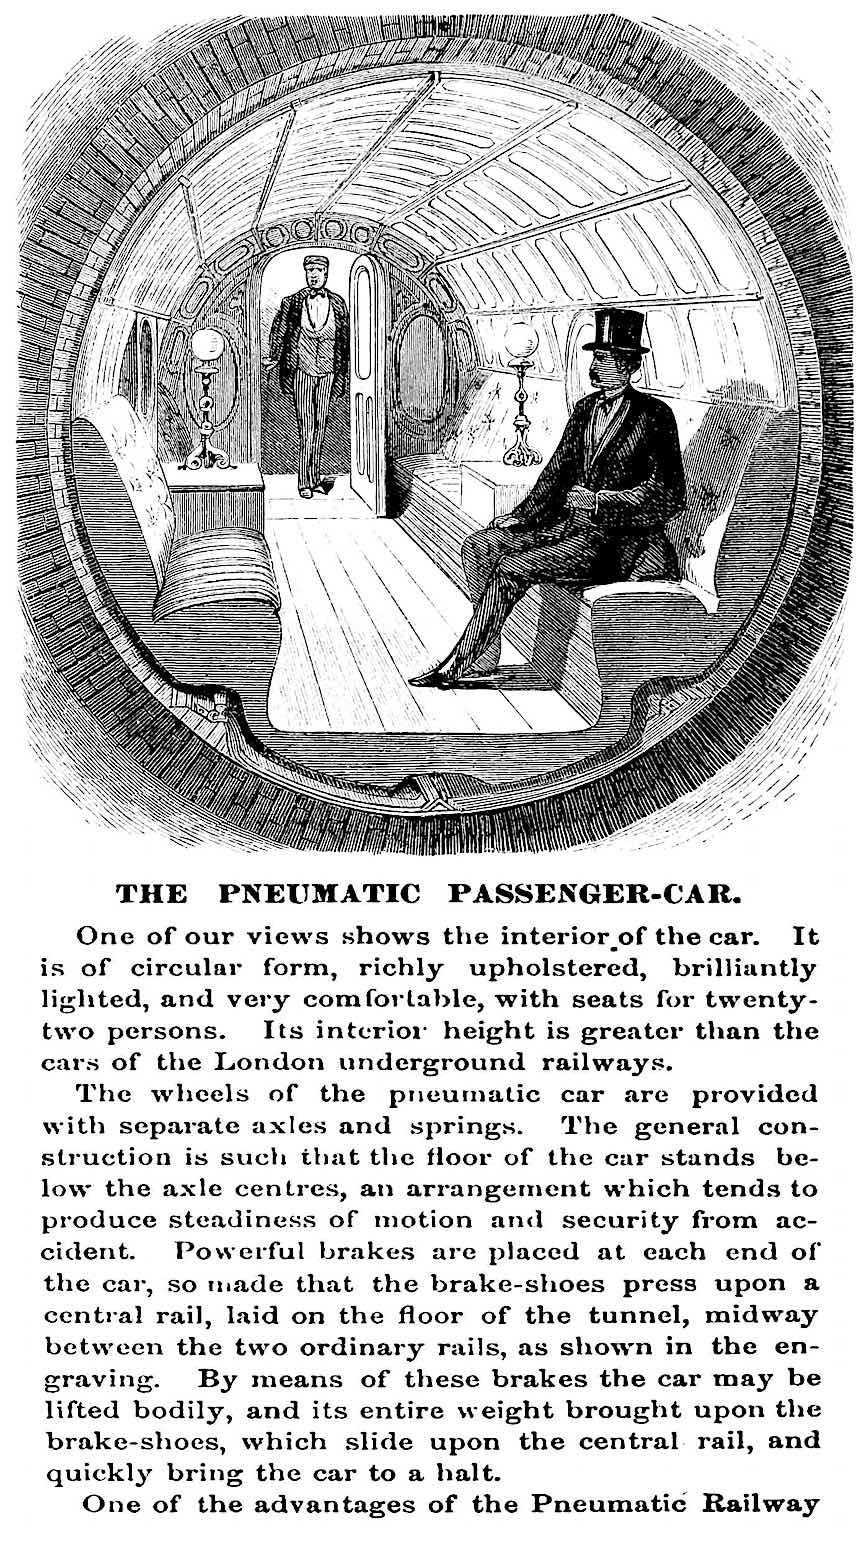 this 1870 pneumatic passenger car existed in New York, illustration with text